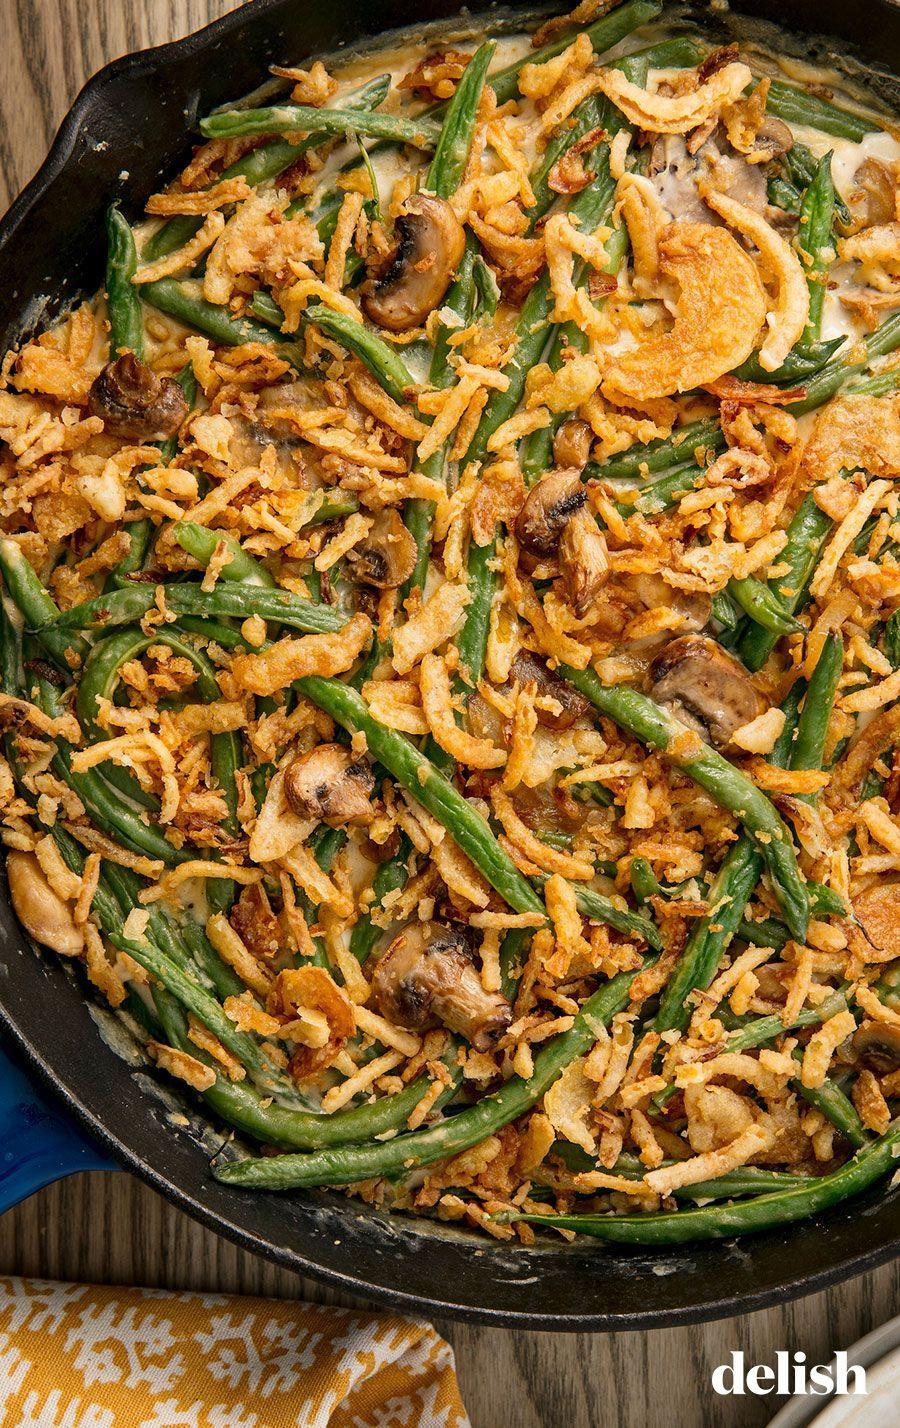 """<p>Green bean casserole is the quintessential <a href=""""http://www.delish.com/holiday-recipes/thanksgiving/"""" rel=""""nofollow noopener"""" target=""""_blank"""" data-ylk=""""slk:Thanksgiving"""" class=""""link rapid-noclick-resp"""">Thanksgiving</a> side. Somebody's gotta bring it.</p><p>Get the recipe from <a href=""""https://www.delish.com/holiday-recipes/thanksgiving/a55340/easy-homemade-classic-green-bean-casserole-recipe/"""" rel=""""nofollow noopener"""" target=""""_blank"""" data-ylk=""""slk:Delish"""" class=""""link rapid-noclick-resp"""">Delish</a>. </p>"""